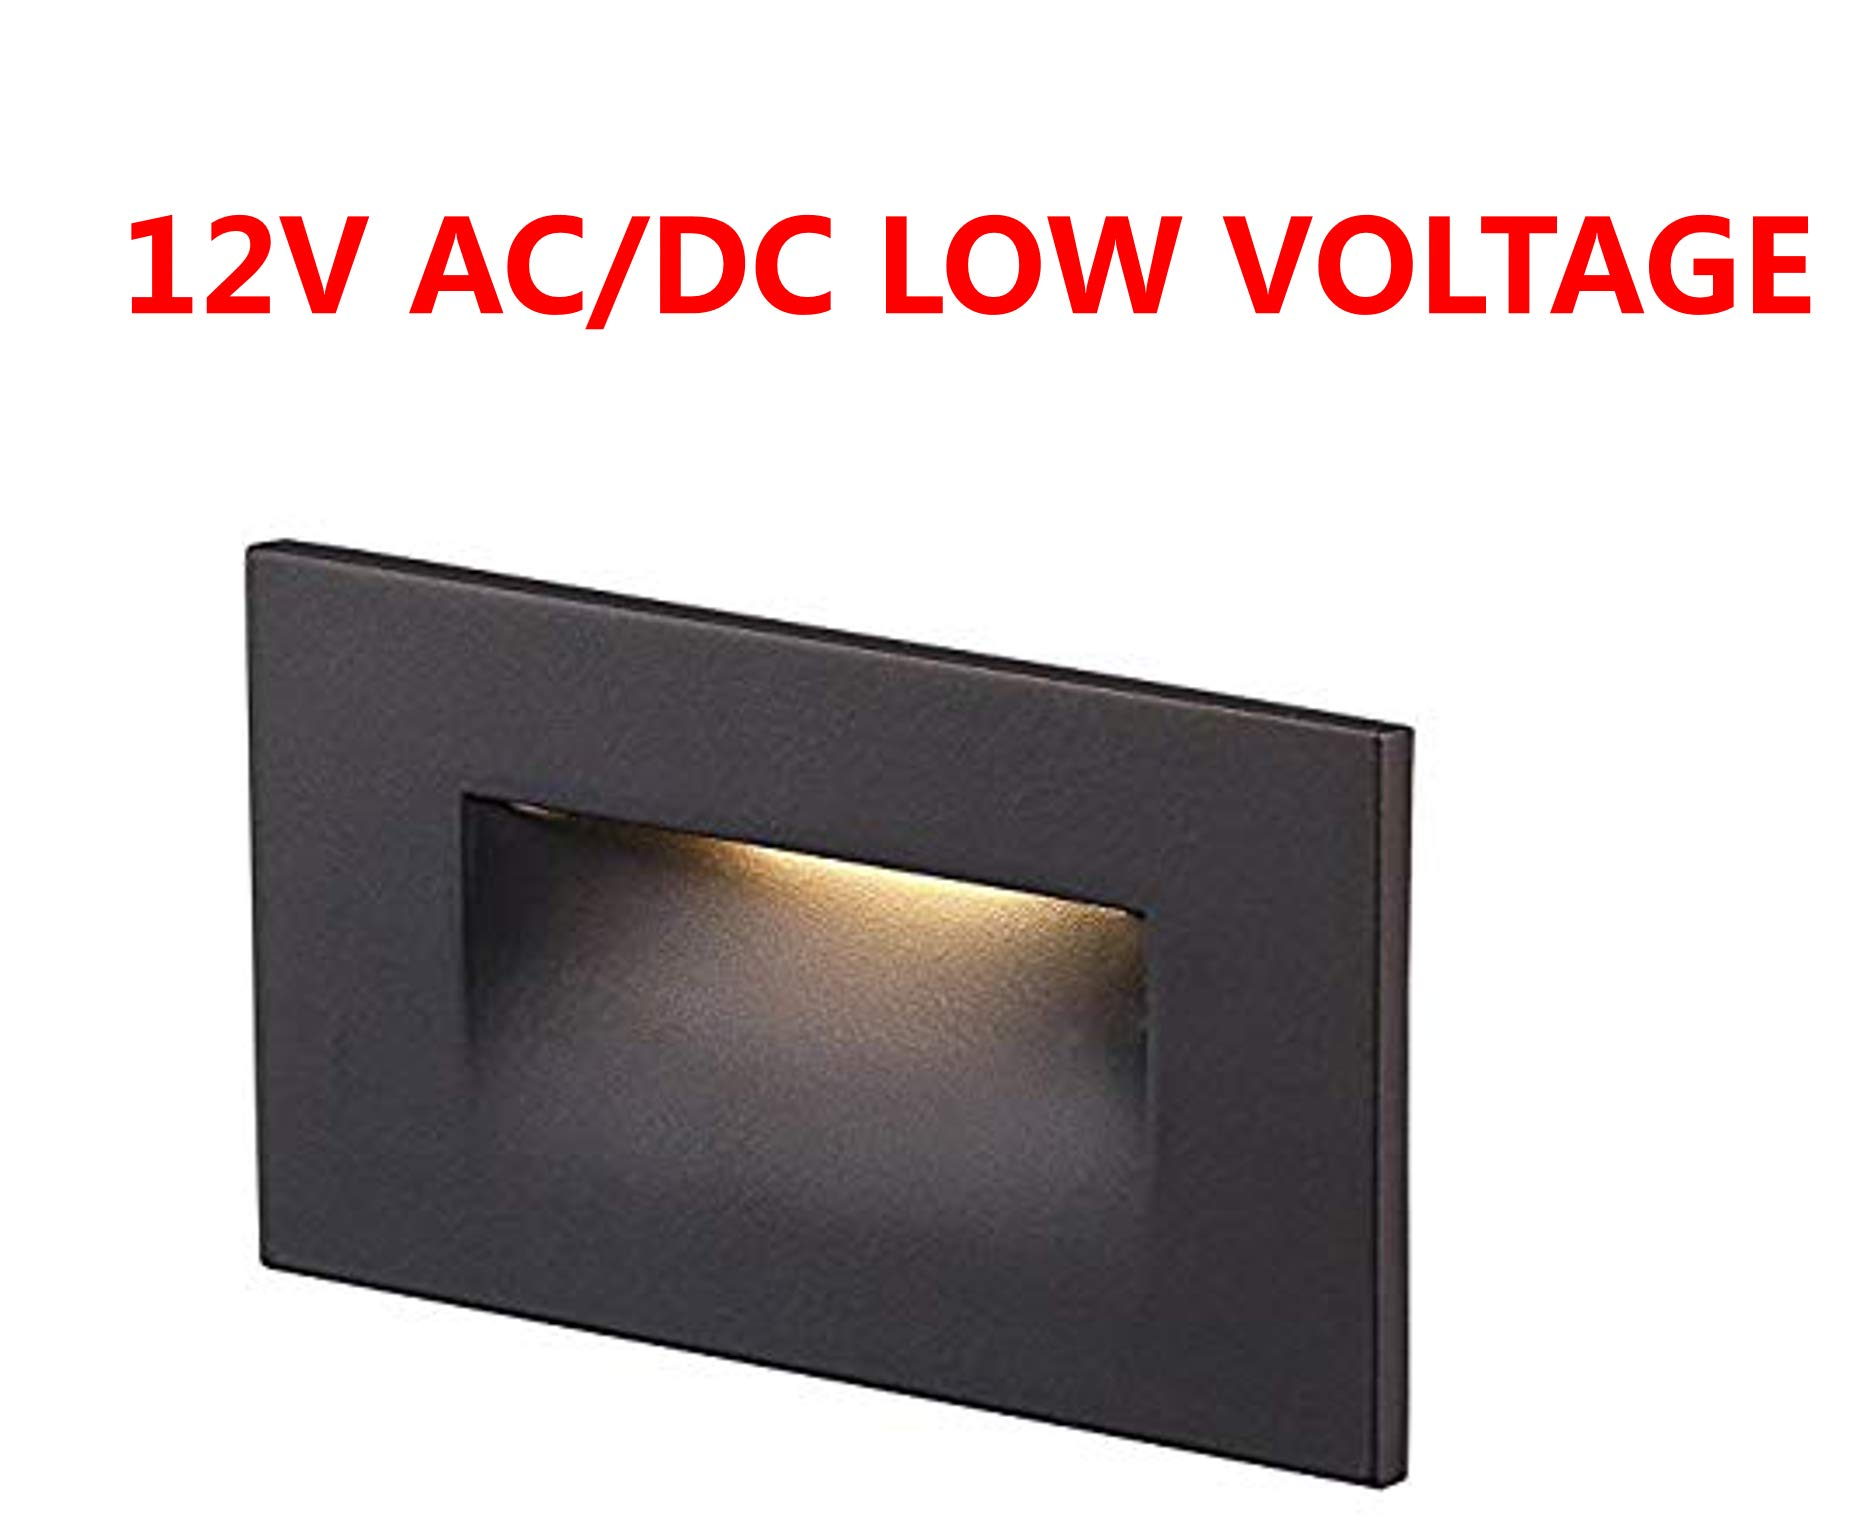 Cloudy Bay 12V Low Voltage LED Step Light,3000K Warm White,Stair Light,Oil Rubbed Bronze by CLOUDY BAY